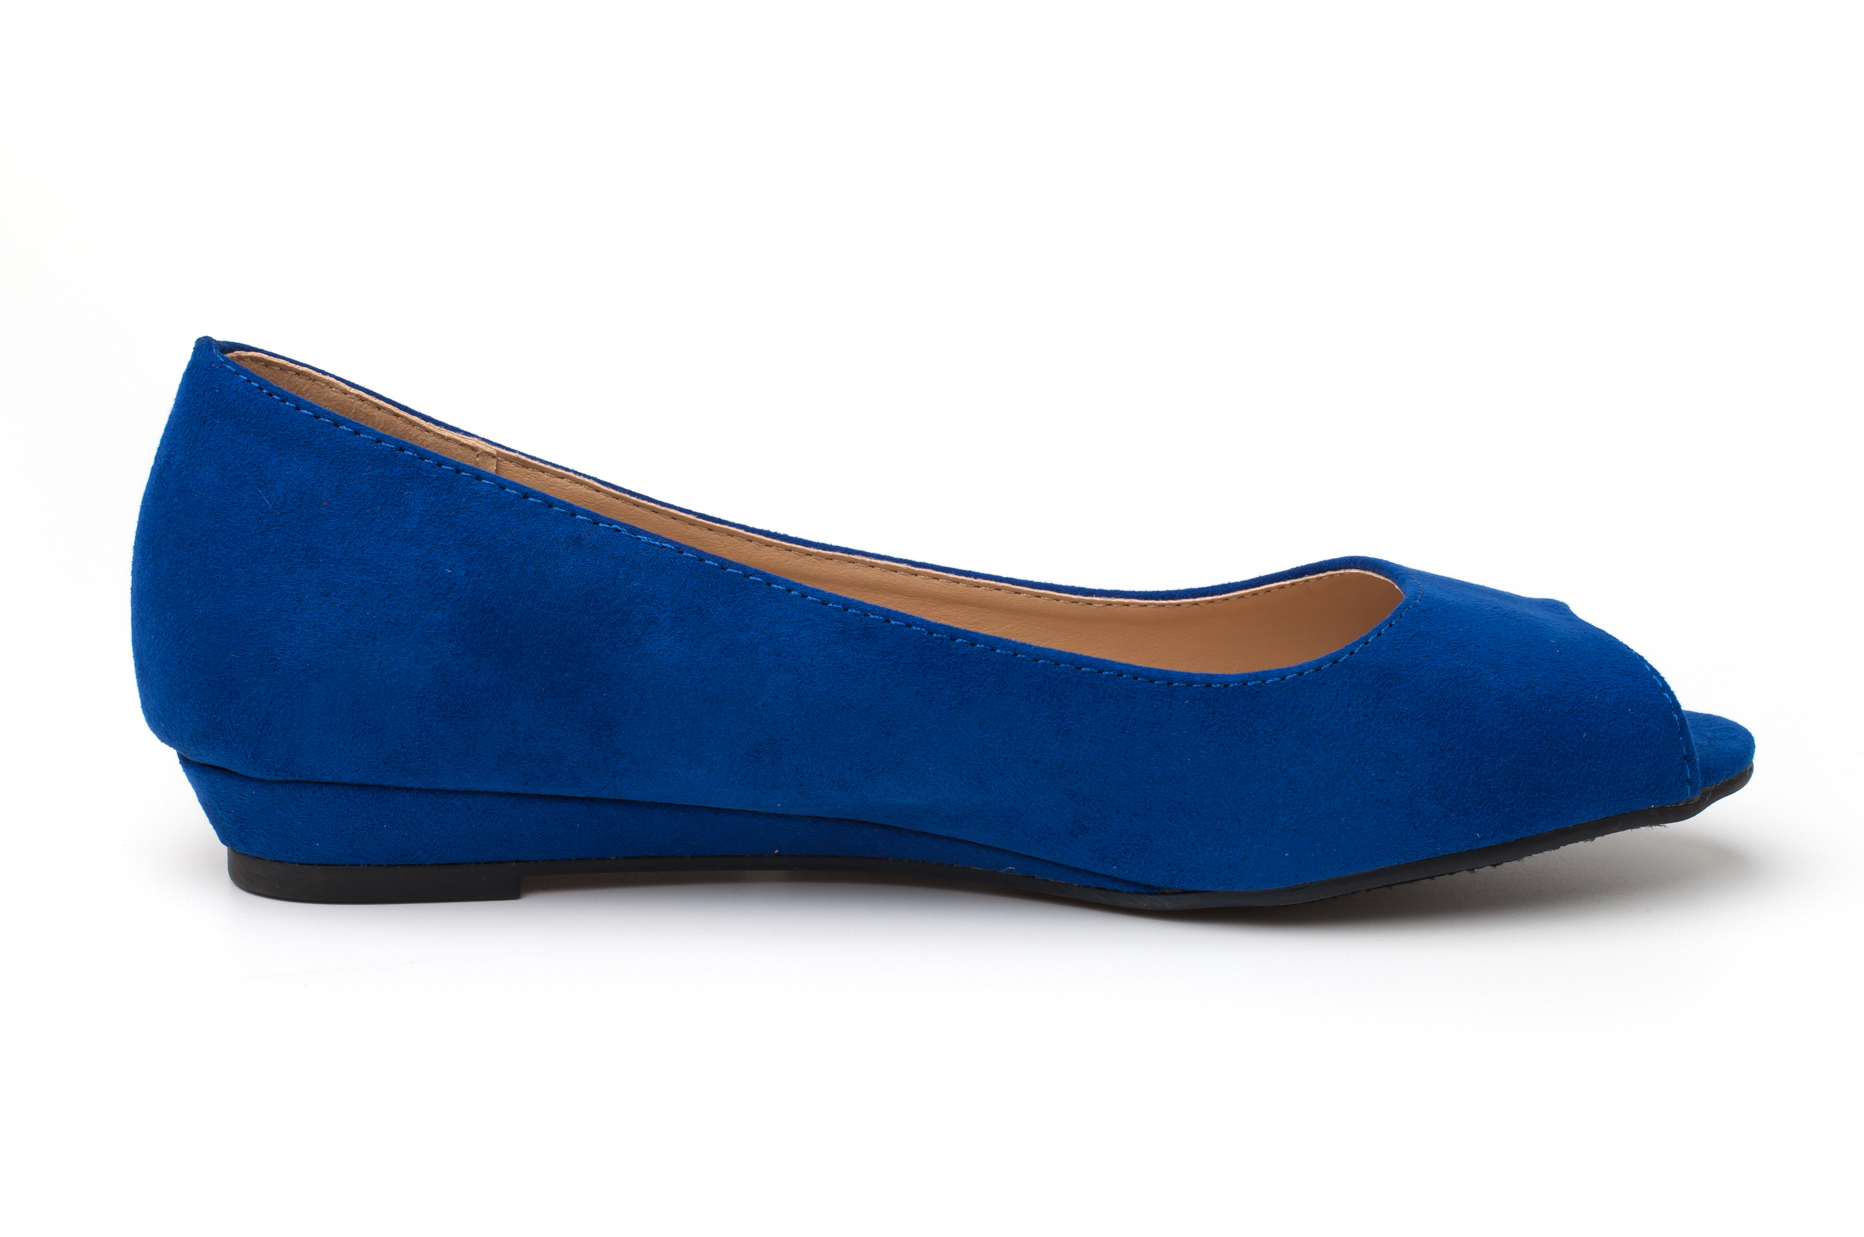 DREAM-PAIRS-Womens-Ballet-Flats-Low-Heel-Open-Toe-Slip-On-Dress-Flat-Shoes thumbnail 12